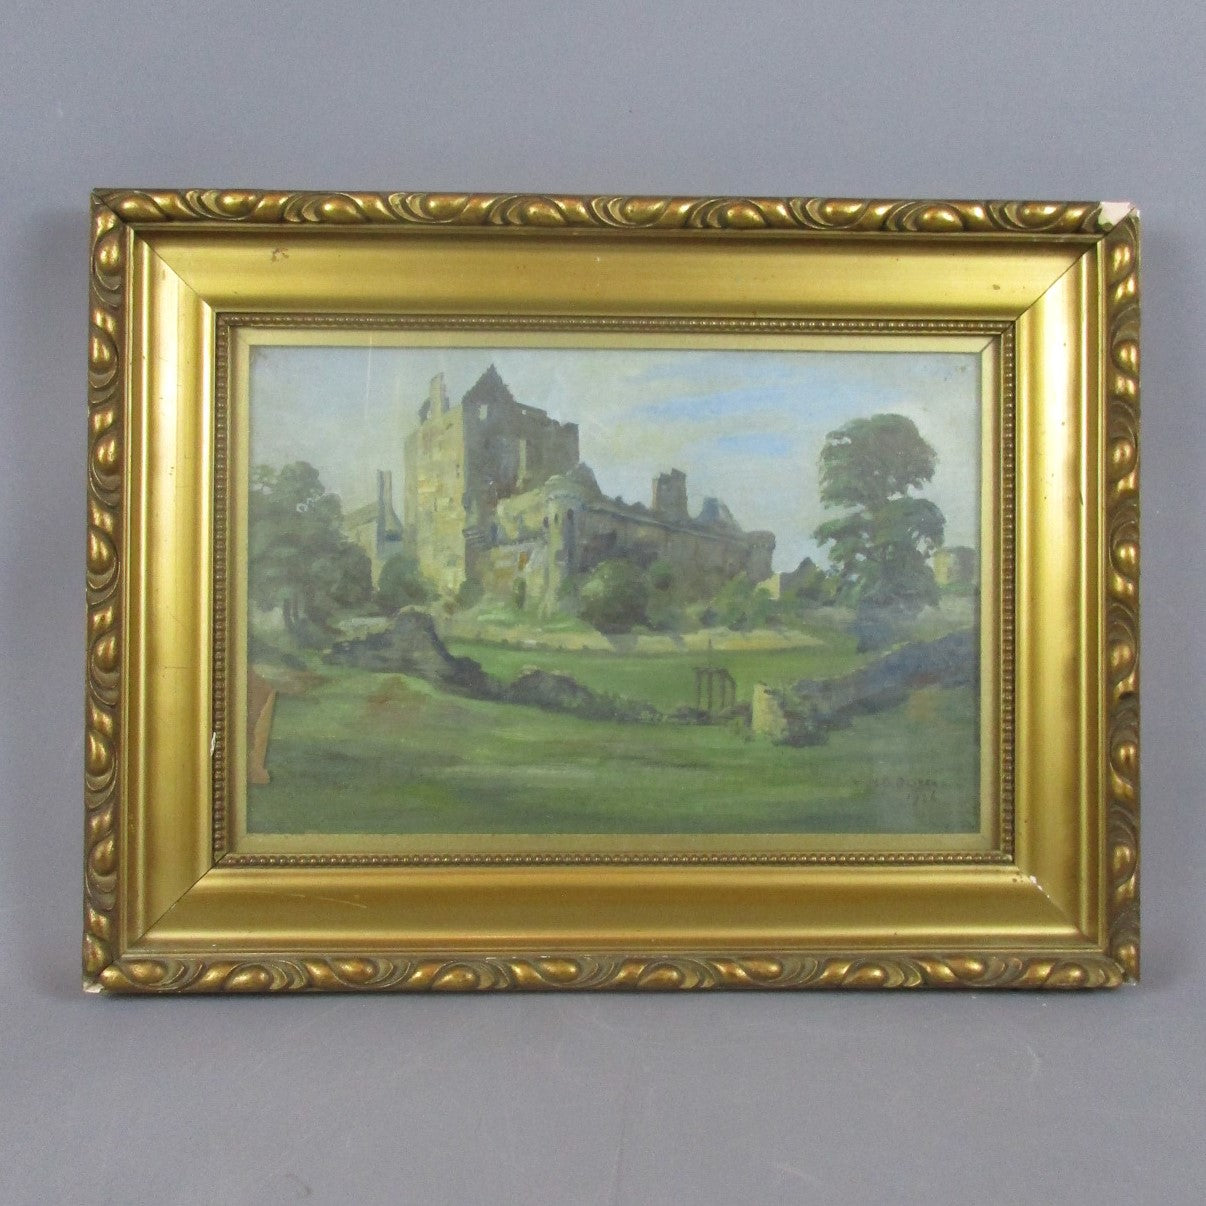 Framed Oil on Canvas Painting of Craigmillar Castle Edinburgh Vintage c1926